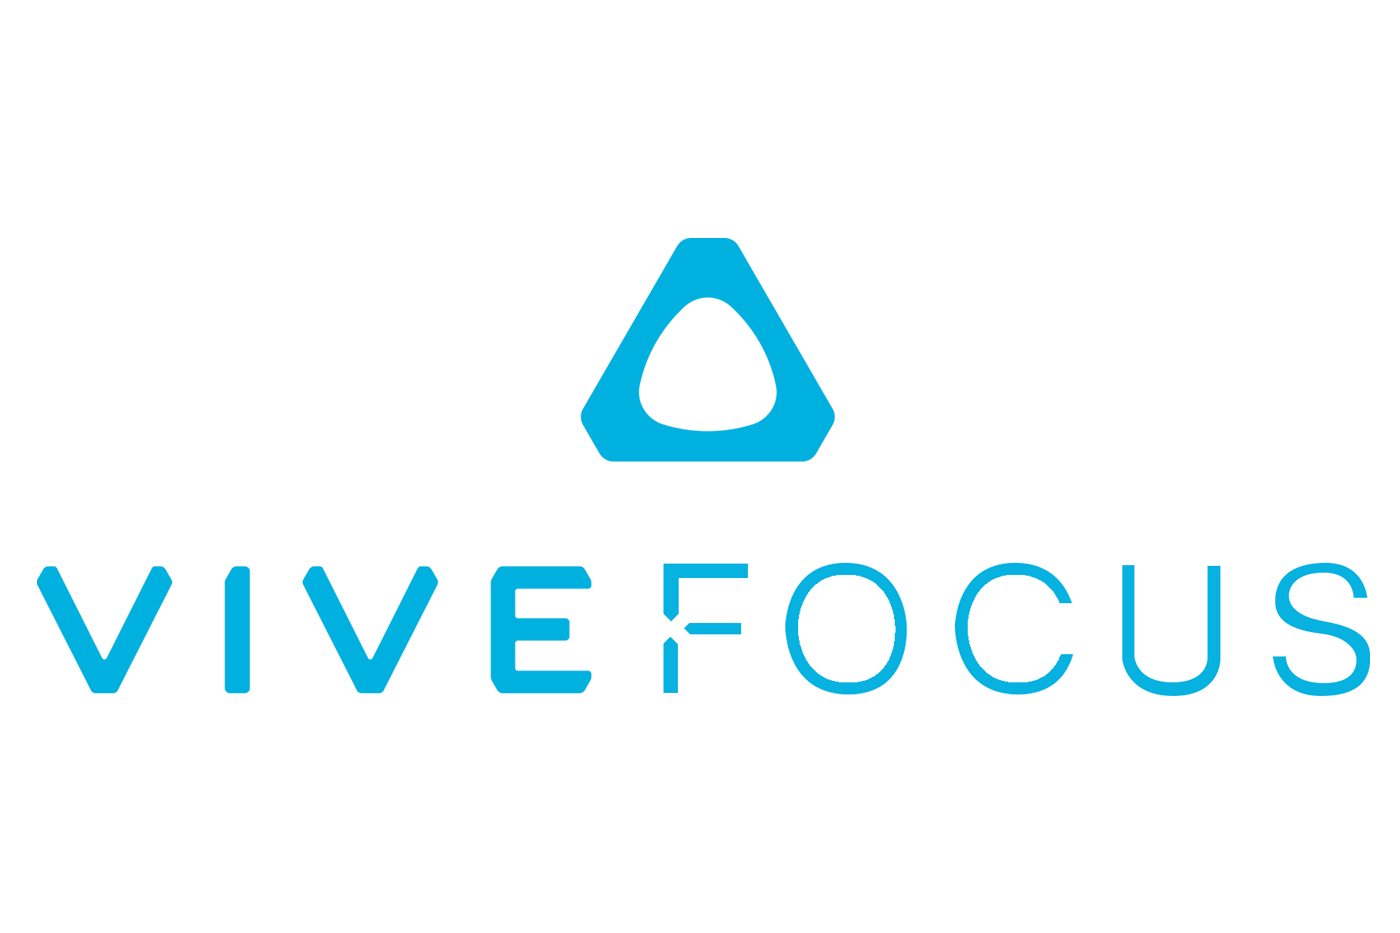 HTC Vive Focus Logo in Electric Blue